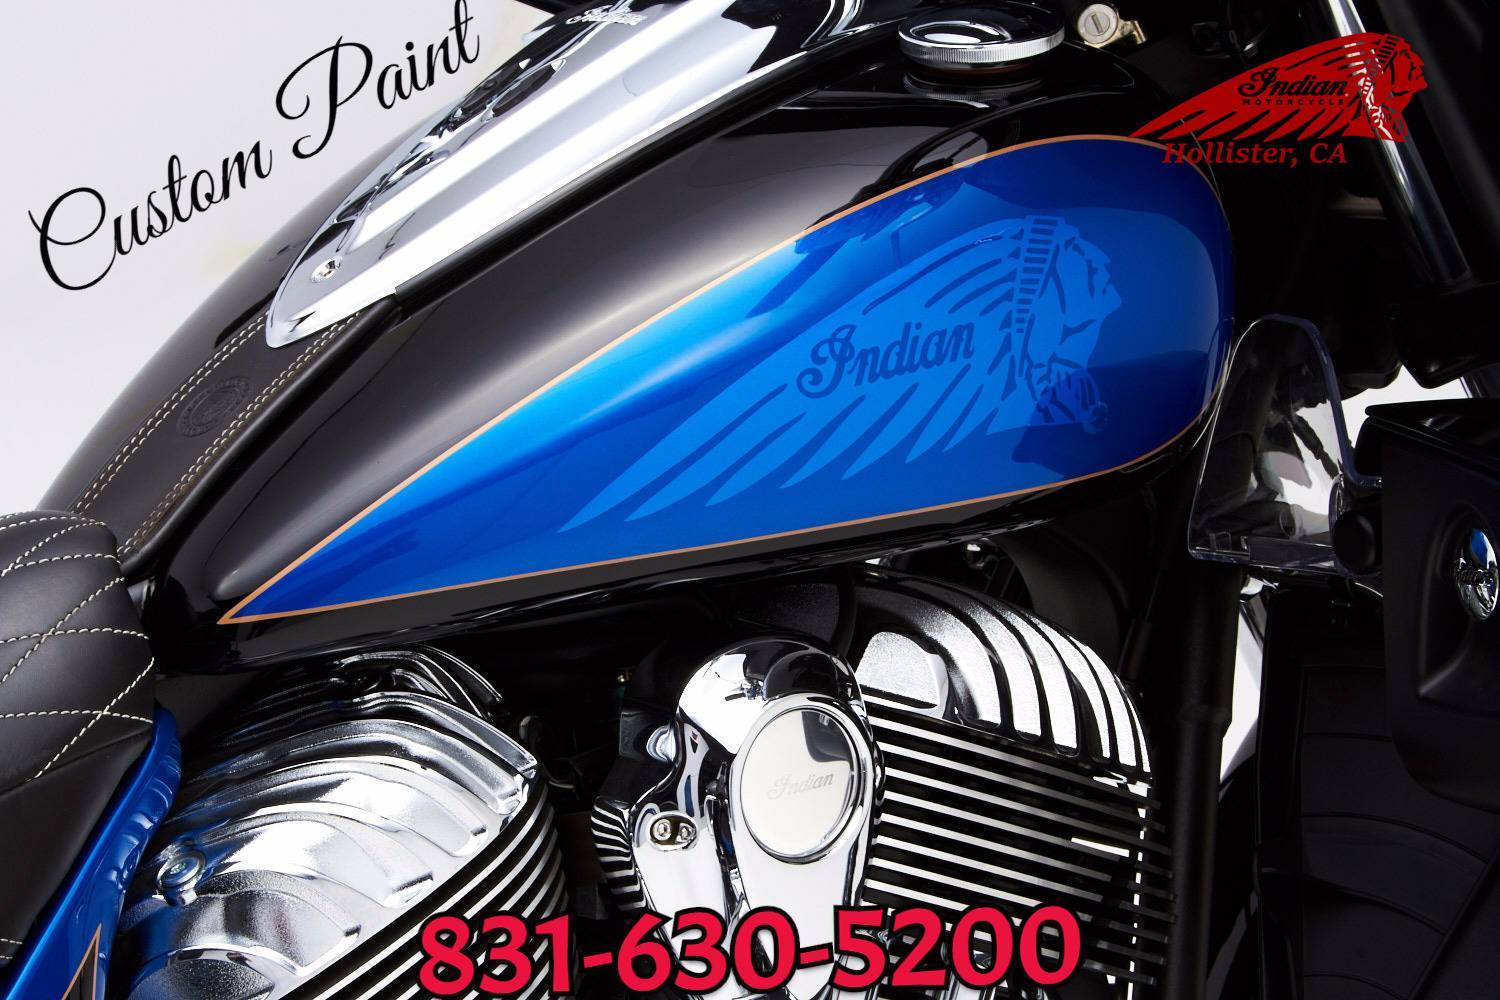 2018 Indian Roadmaster® ABS in Hollister California & 2018 Indian Roadmaster® ABS Motorcycles Hollister California